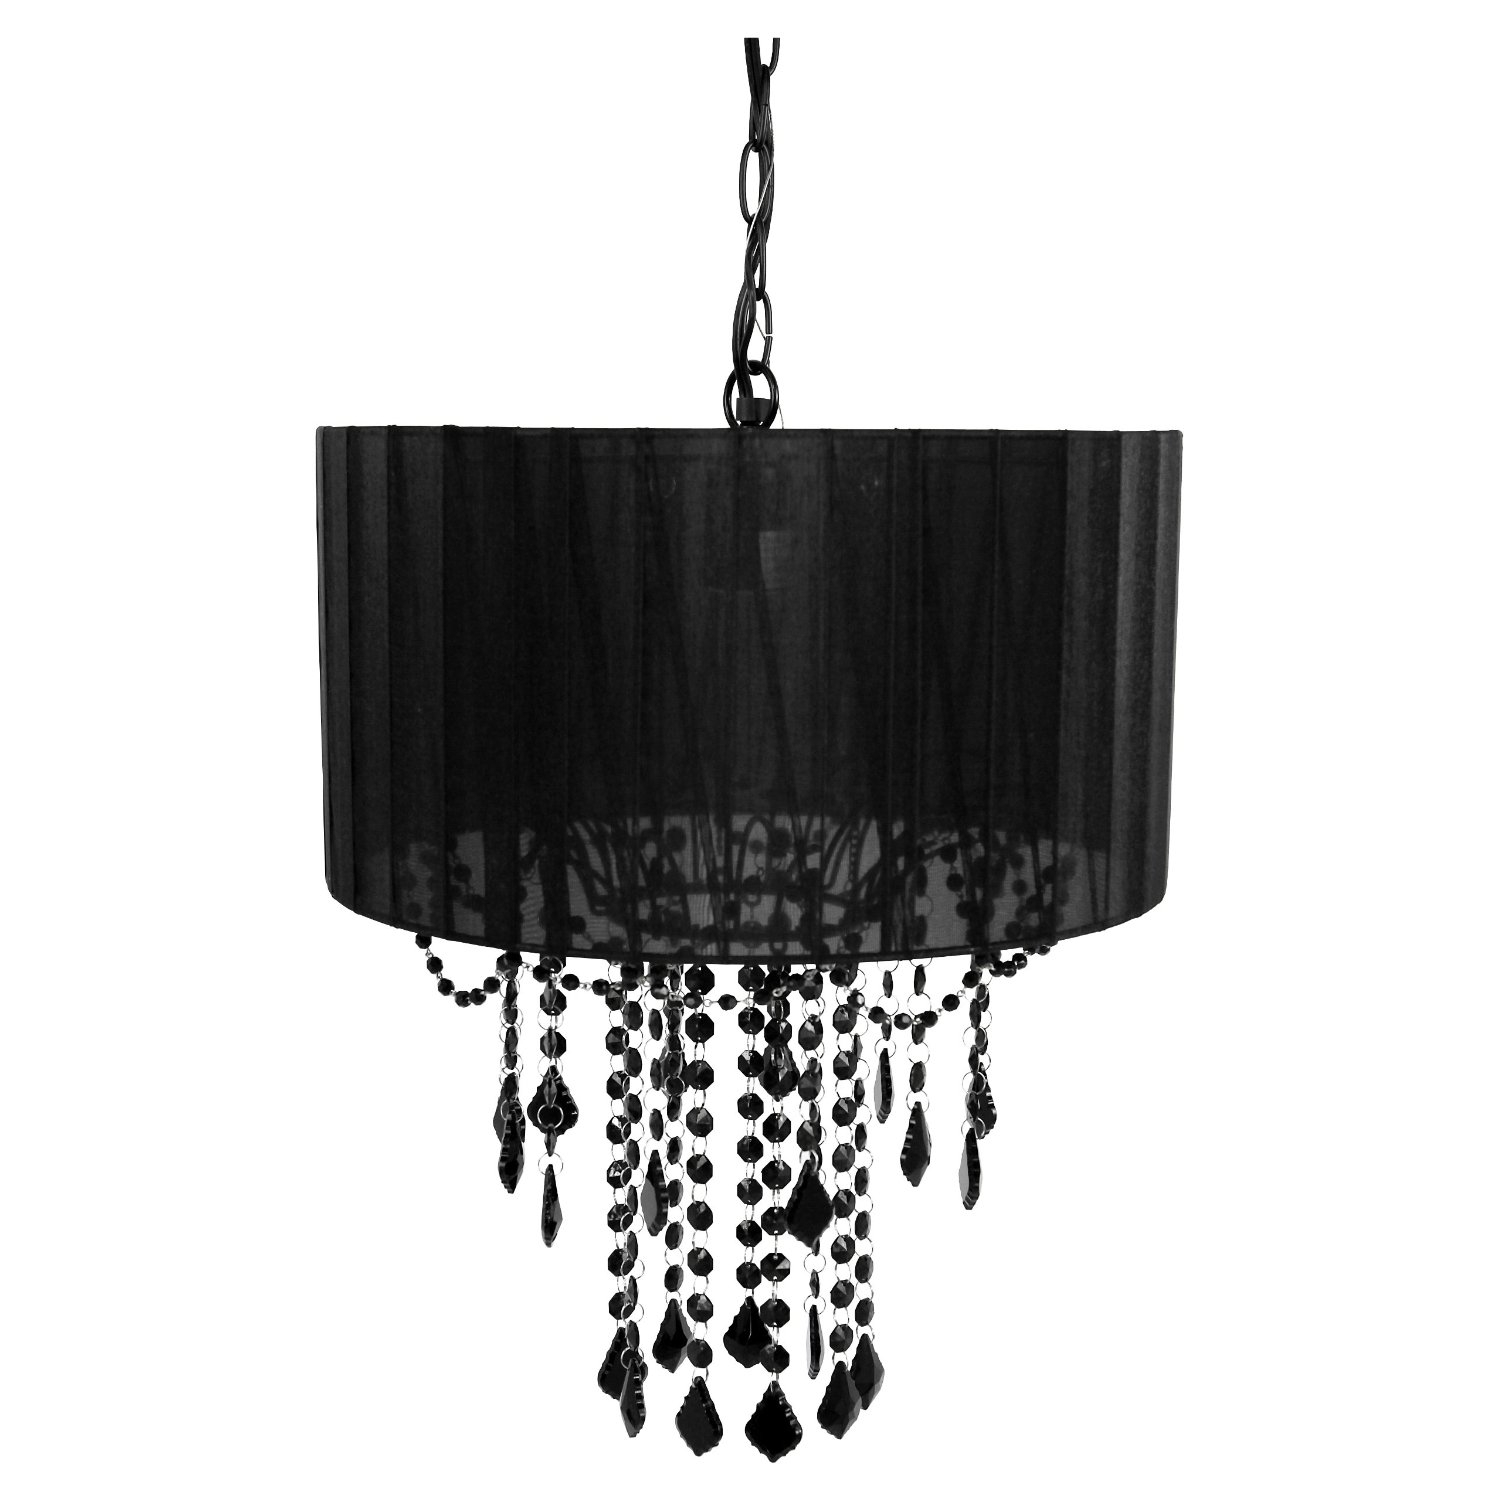 "This Black Drum Shaded One Bulb Chandelier beauty with a soft, modern shade. This gorgeous shaded chandelier creates a lovely light in any room. One bulb chandelier with shade. Uses one 60 watt bulb. Features: -Material: Wrought Iron. -Hang as a swag lamp or professionally install as a ceiling fixture. -Ceiling plate included for professional hardwire installation. -72"" cord and 48"" chain for hanging. -UL Listed."